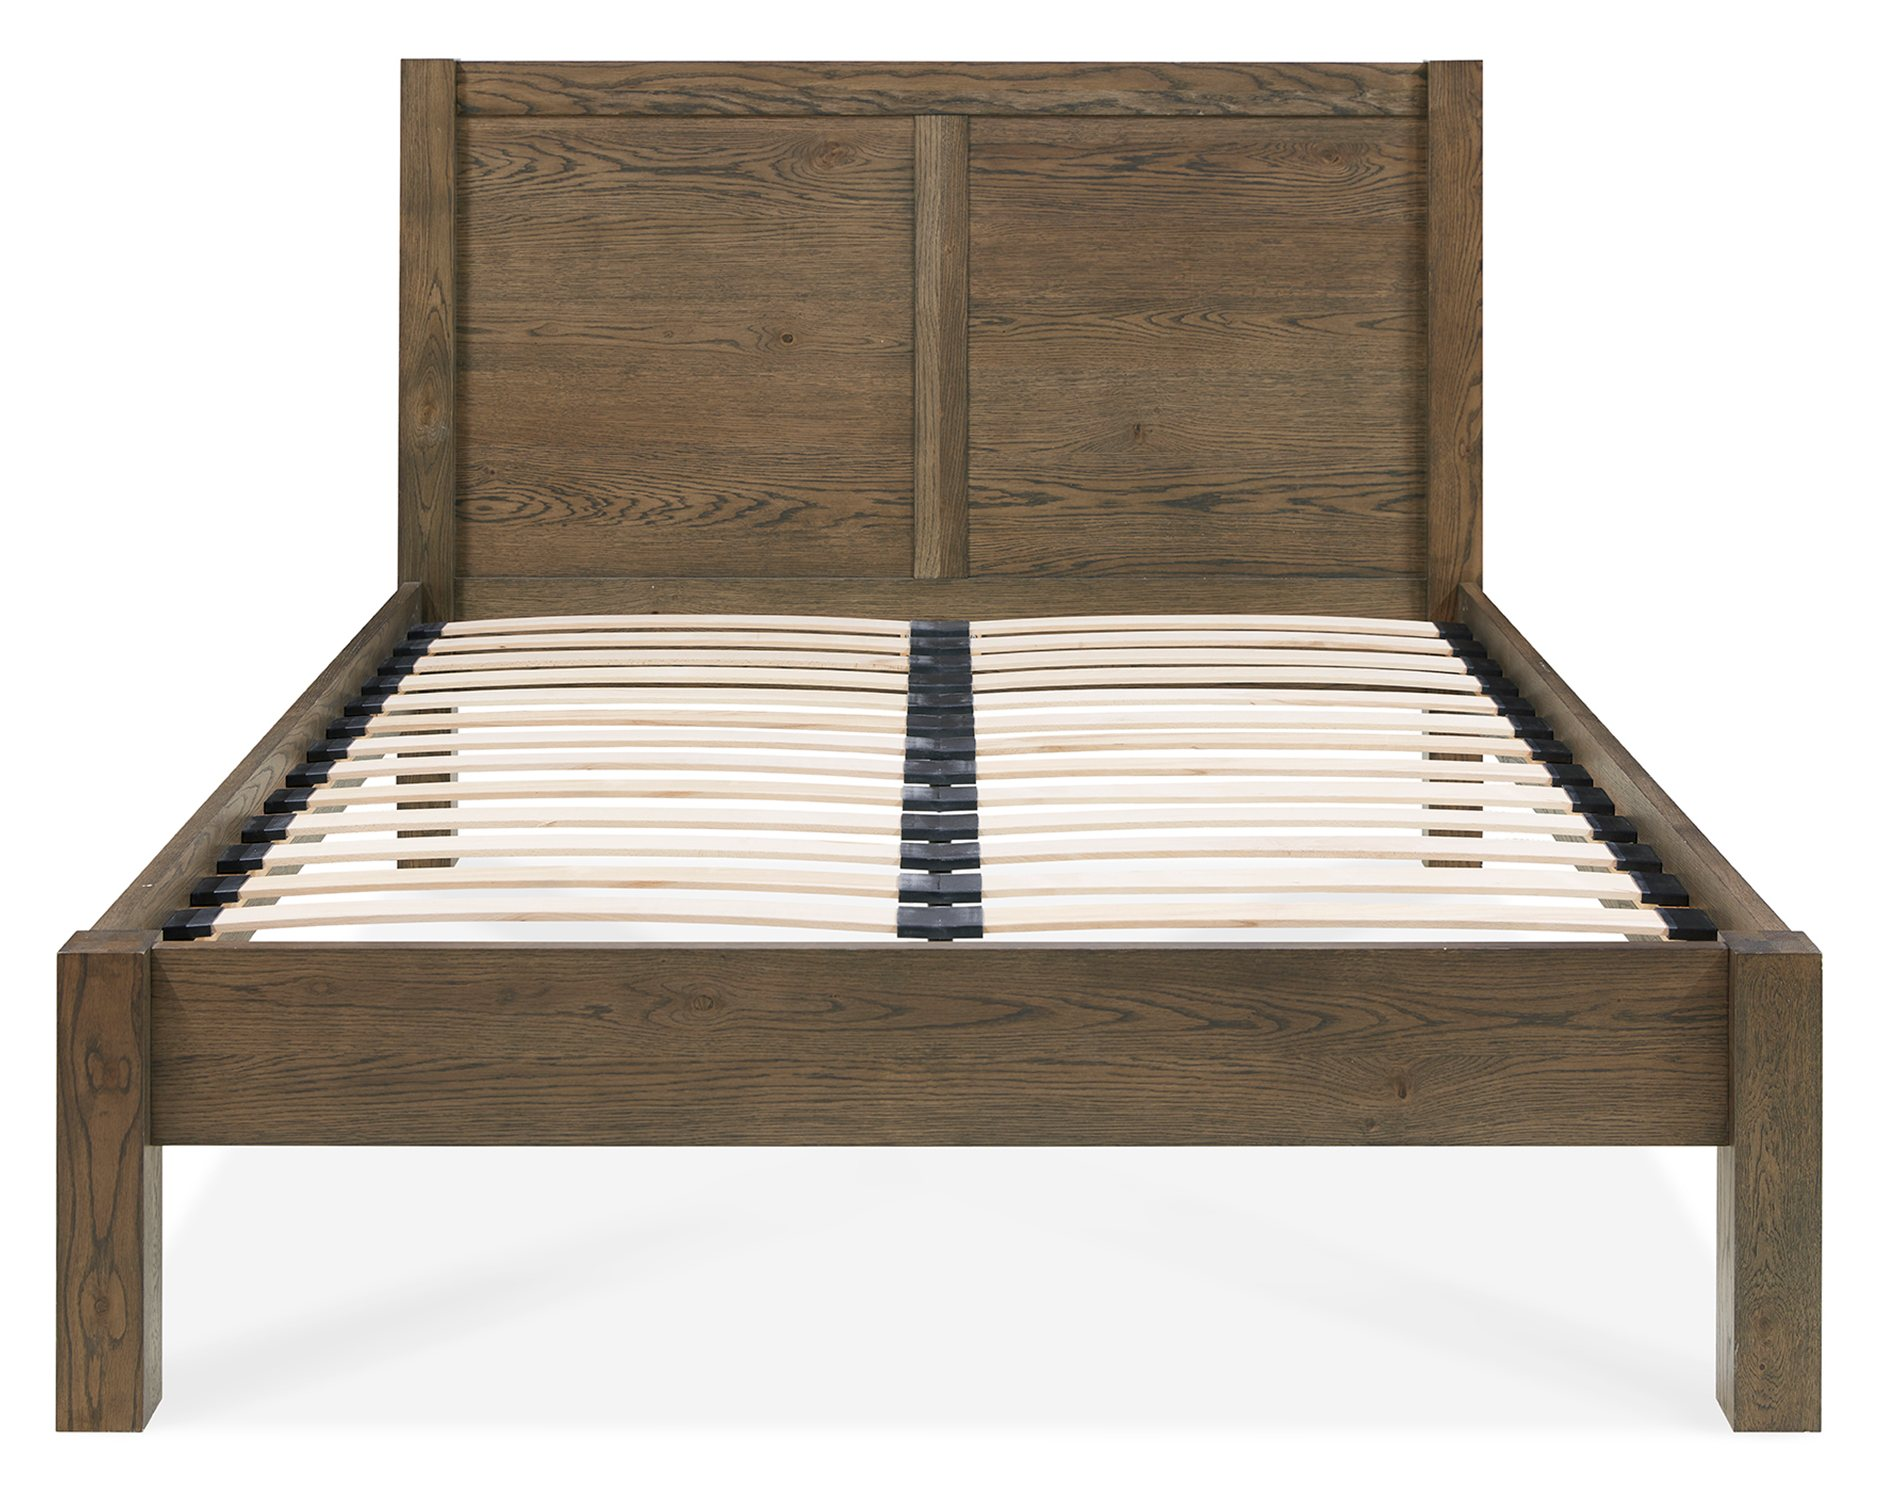 LILLE DARL OAK BEDFRAME - END DETAIL